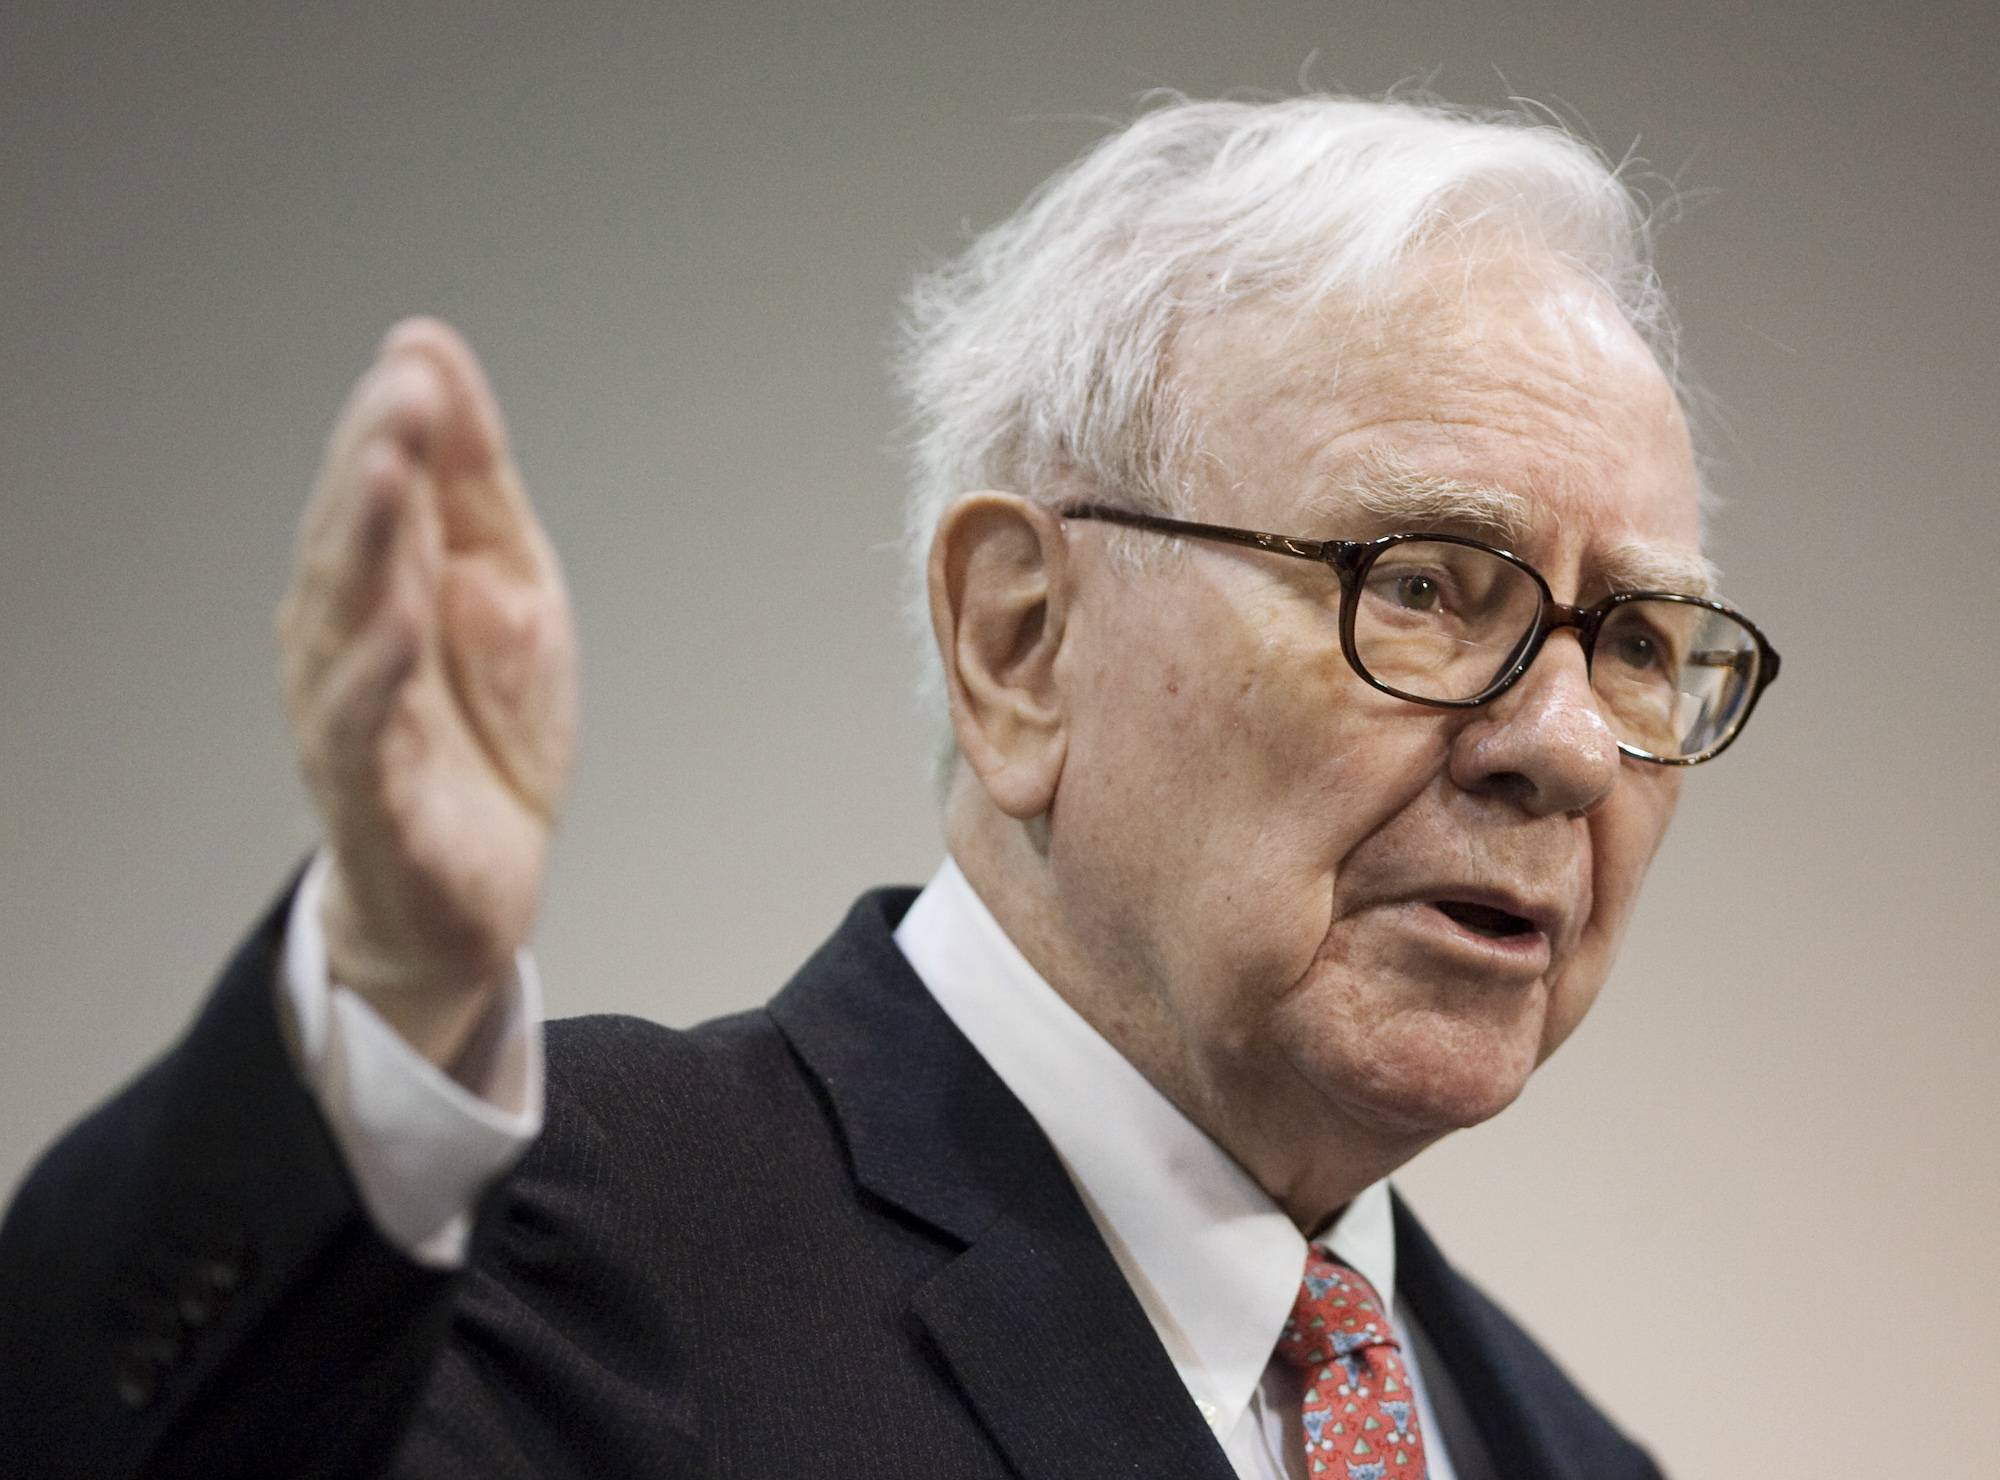 Berkshire Hathaway Inc. will earn 9 percent on a $3 billion preferred equity stake that Warren Buffett's firm will take to finance Burger King Worldwide Inc.'s takeover of Tim Hortons Inc.